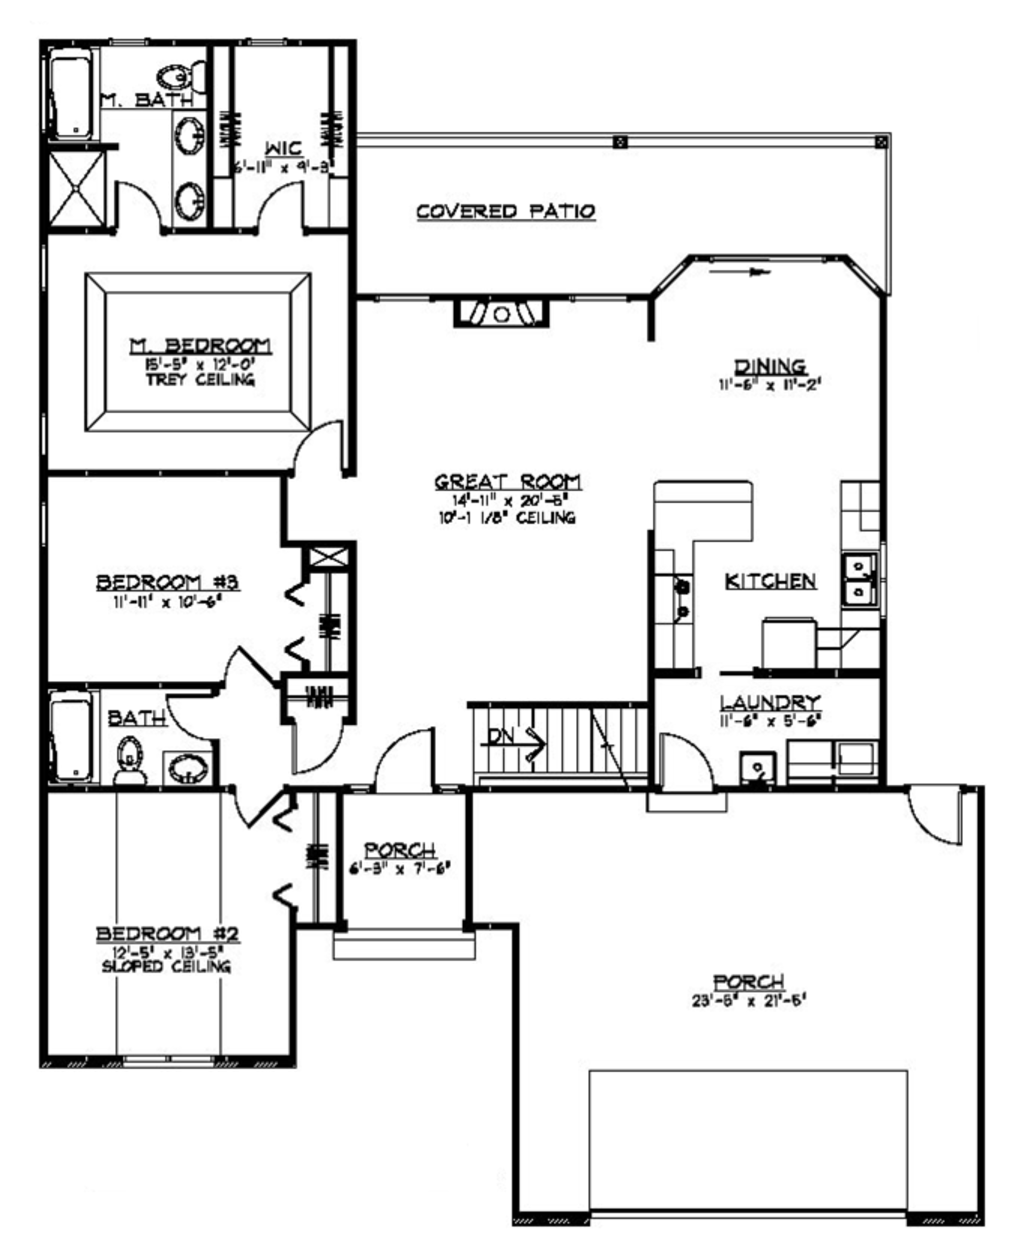 Ranch style house plan 4 beds 3 baths 3020 sq ft plan for Www home plans